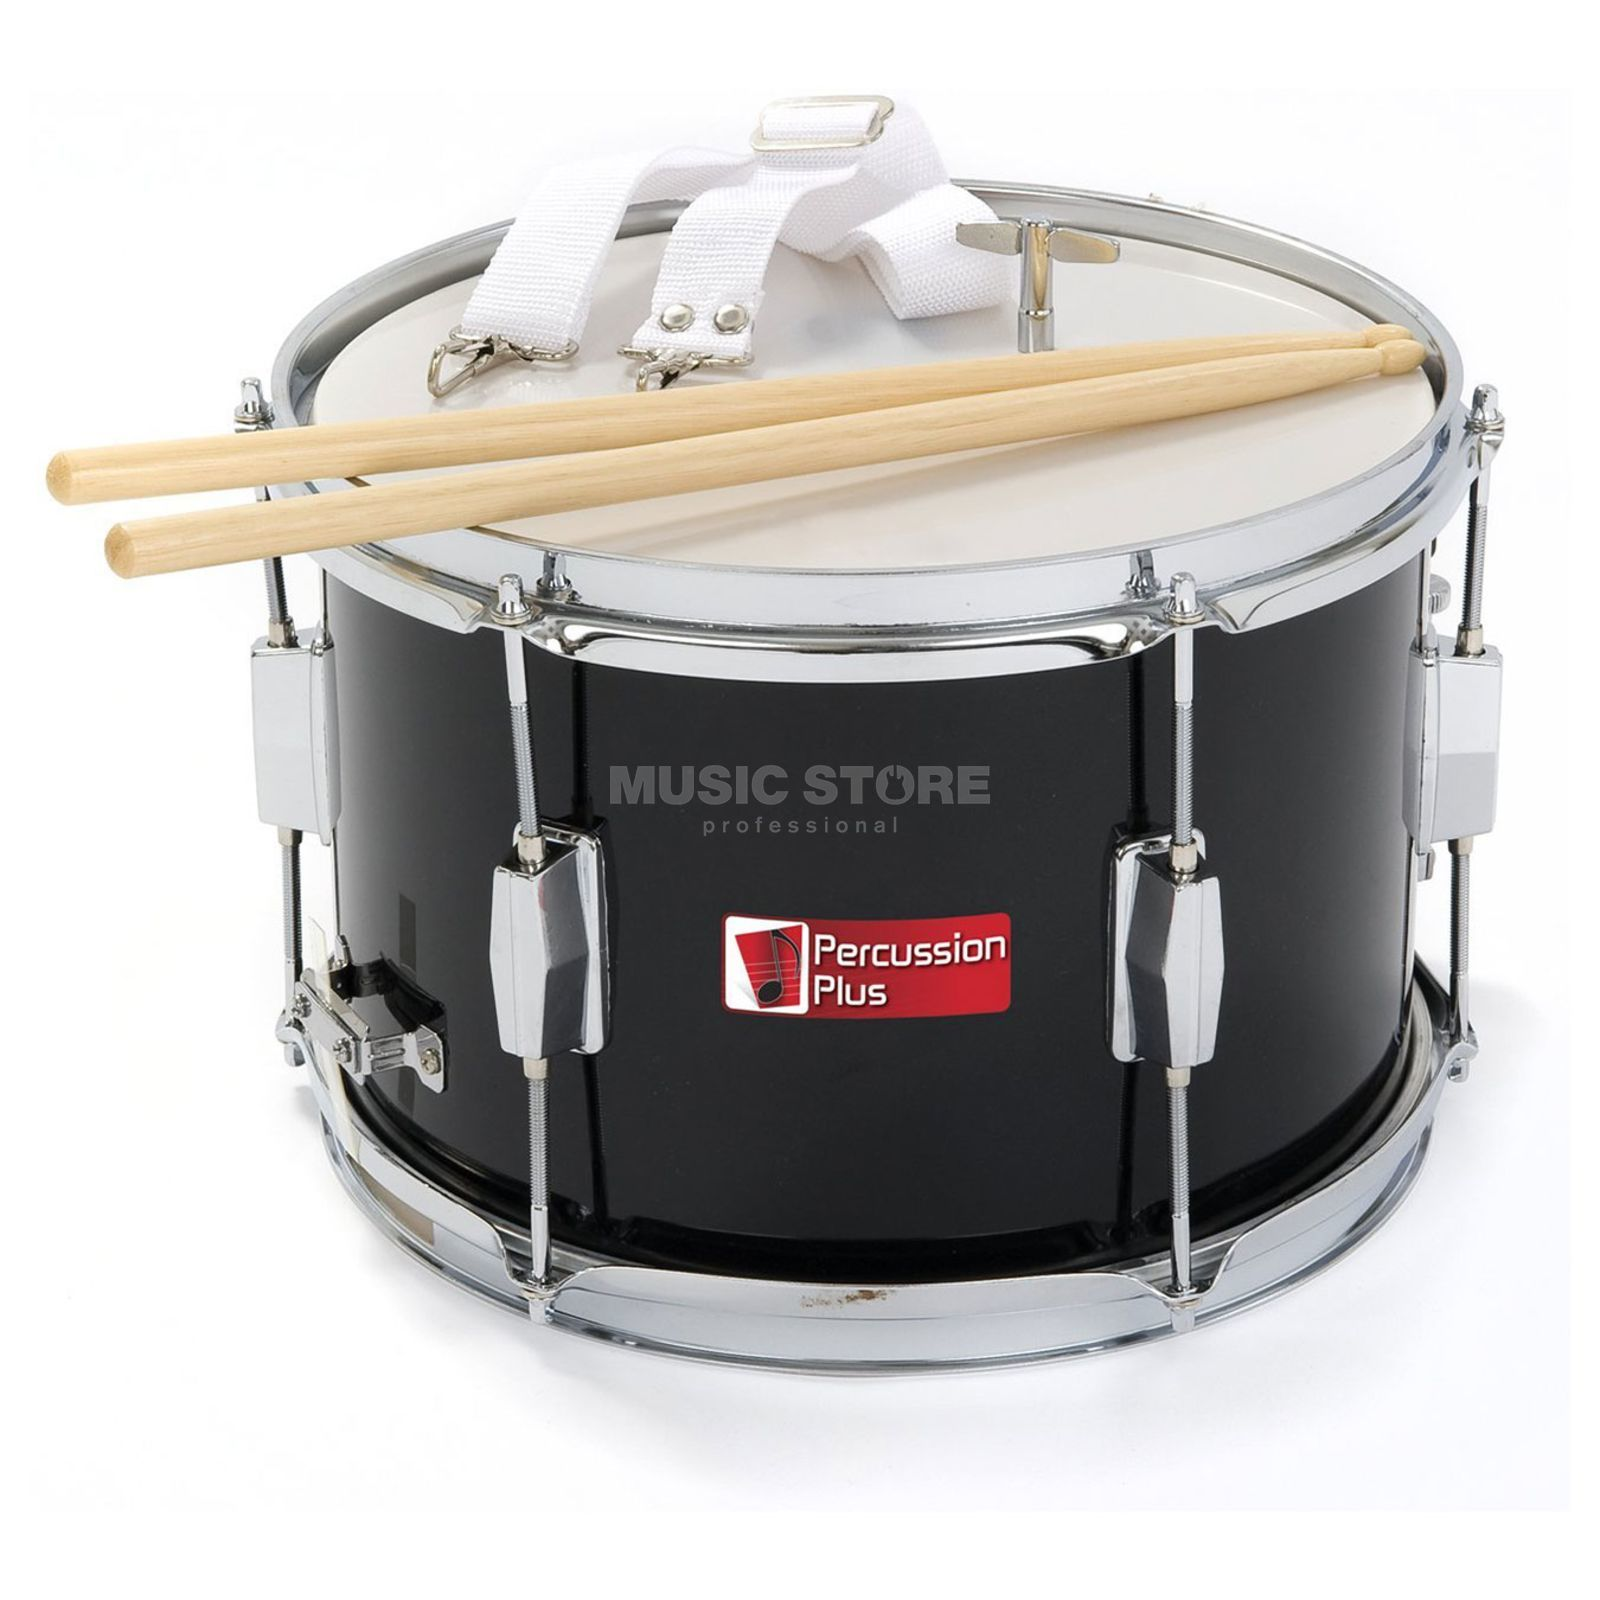 "Percussion Plus PP786 Marching Snare 12"", inkl. Sticks, Gurt Produktbild"